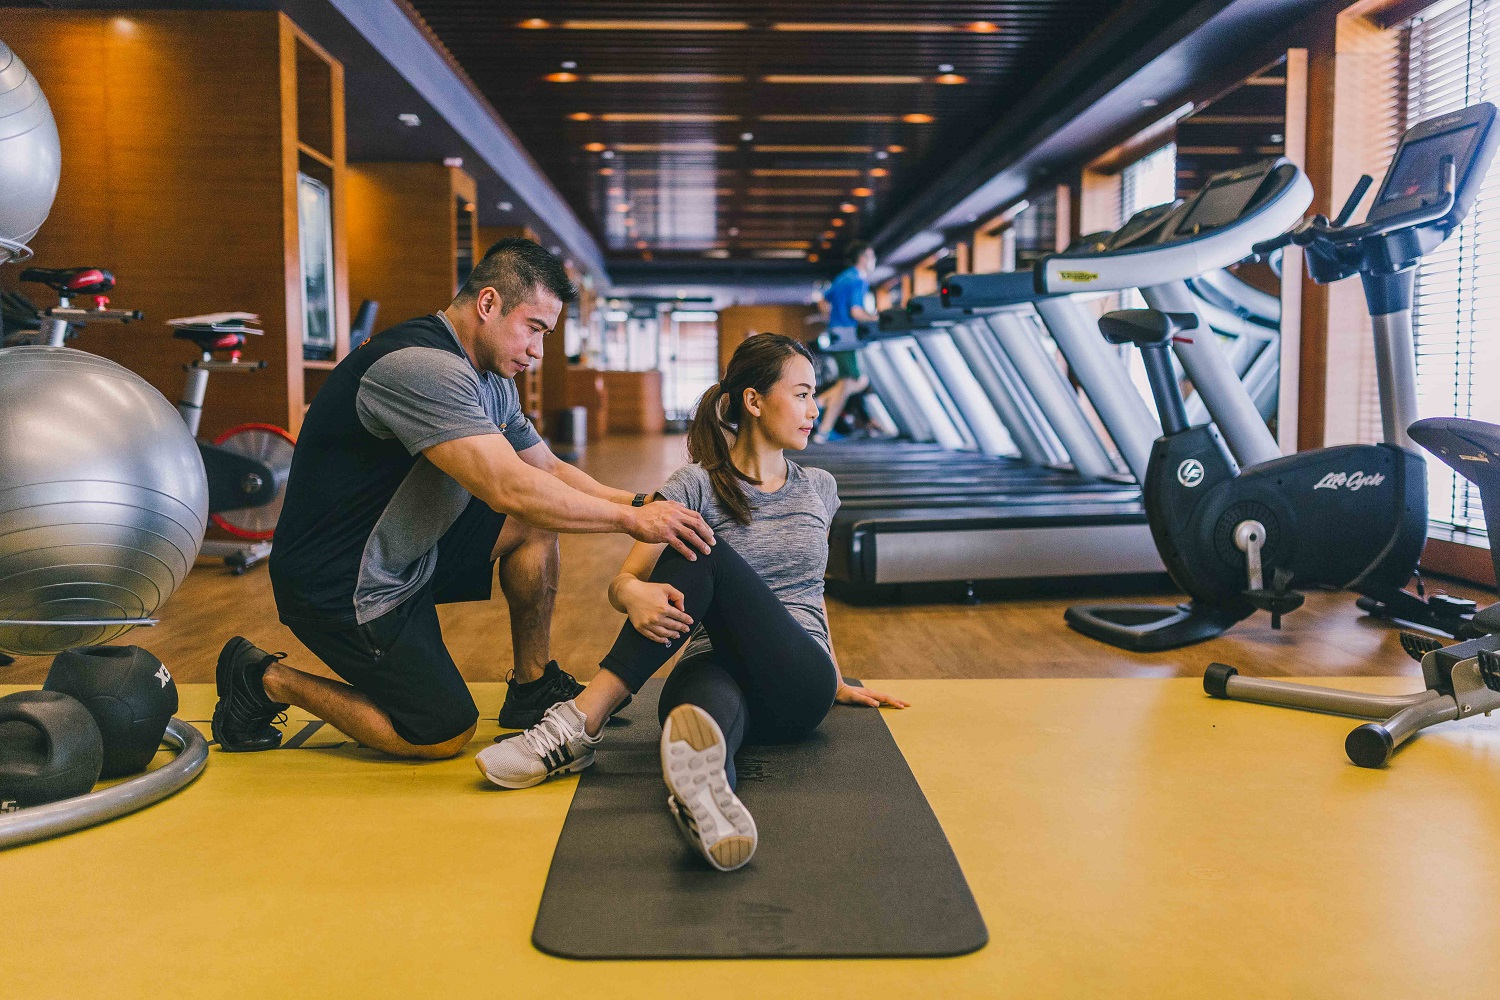 Mandarin-Oriental-Hong-Kong-The-Fitness-Centre-Personal-Training-Floor-Stretches